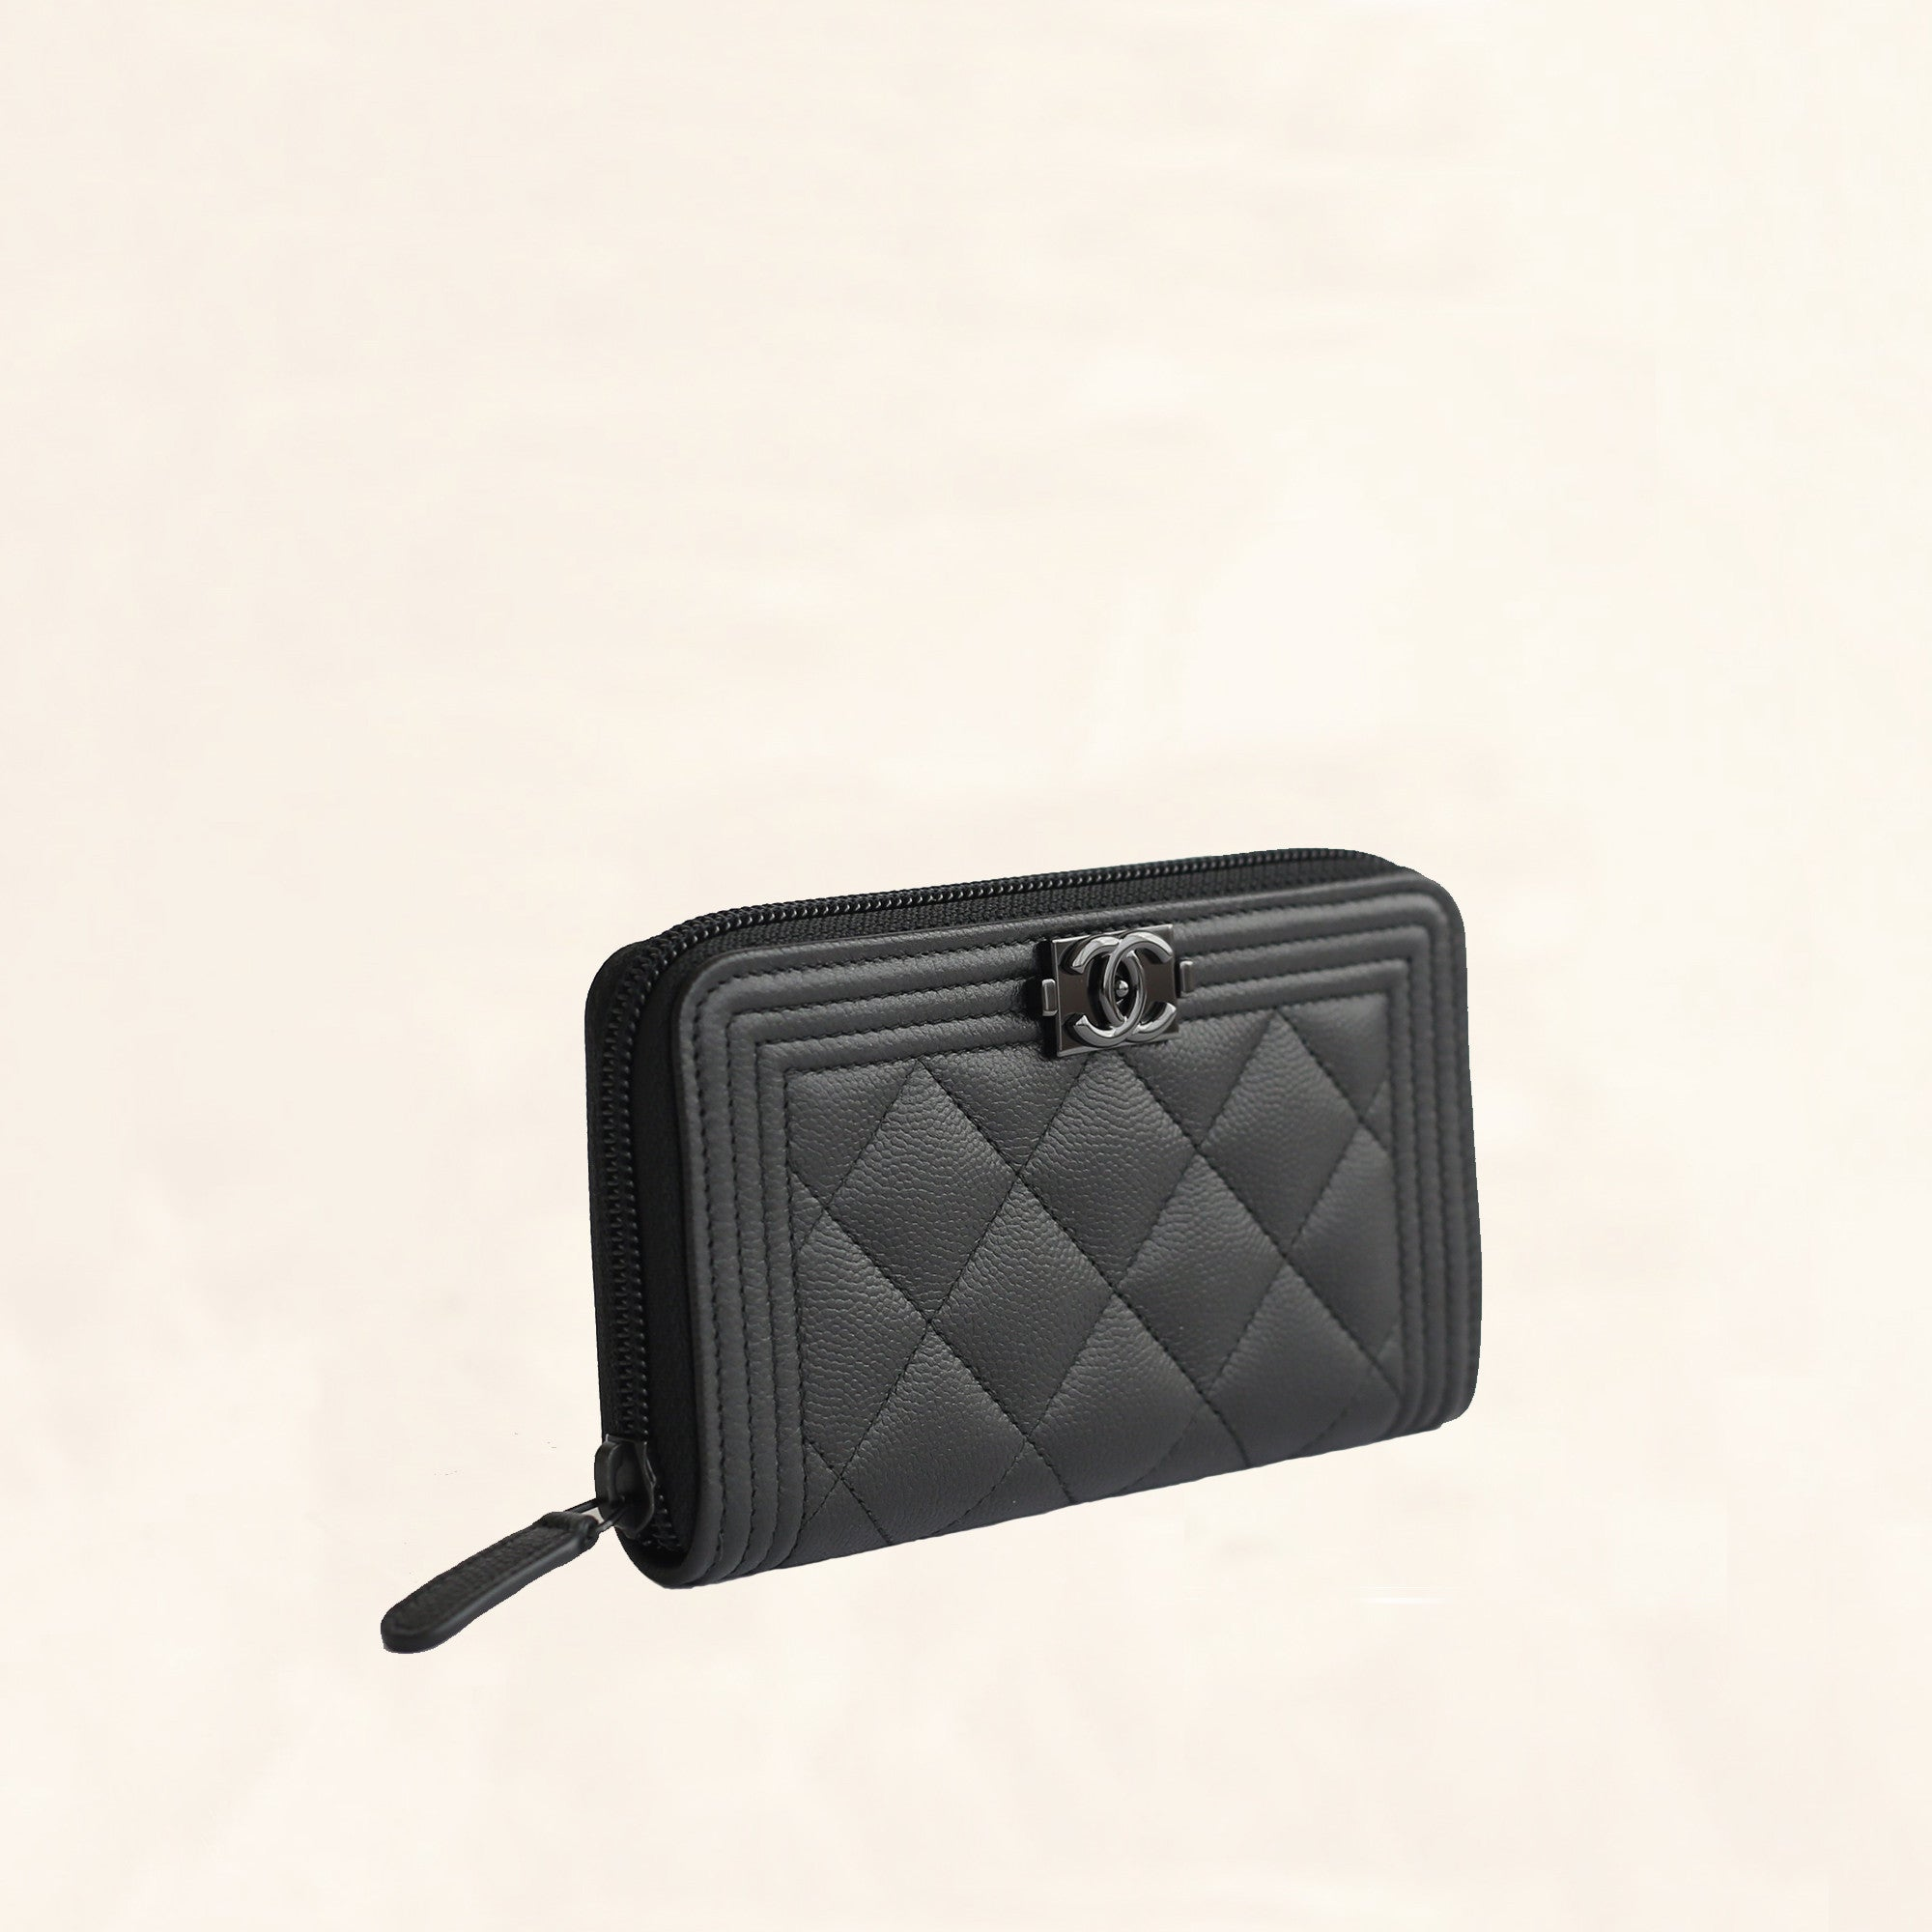 chanel zip coin purse. chanel | so black caviar boy zip wallet small/medium - the-collectory coin purse